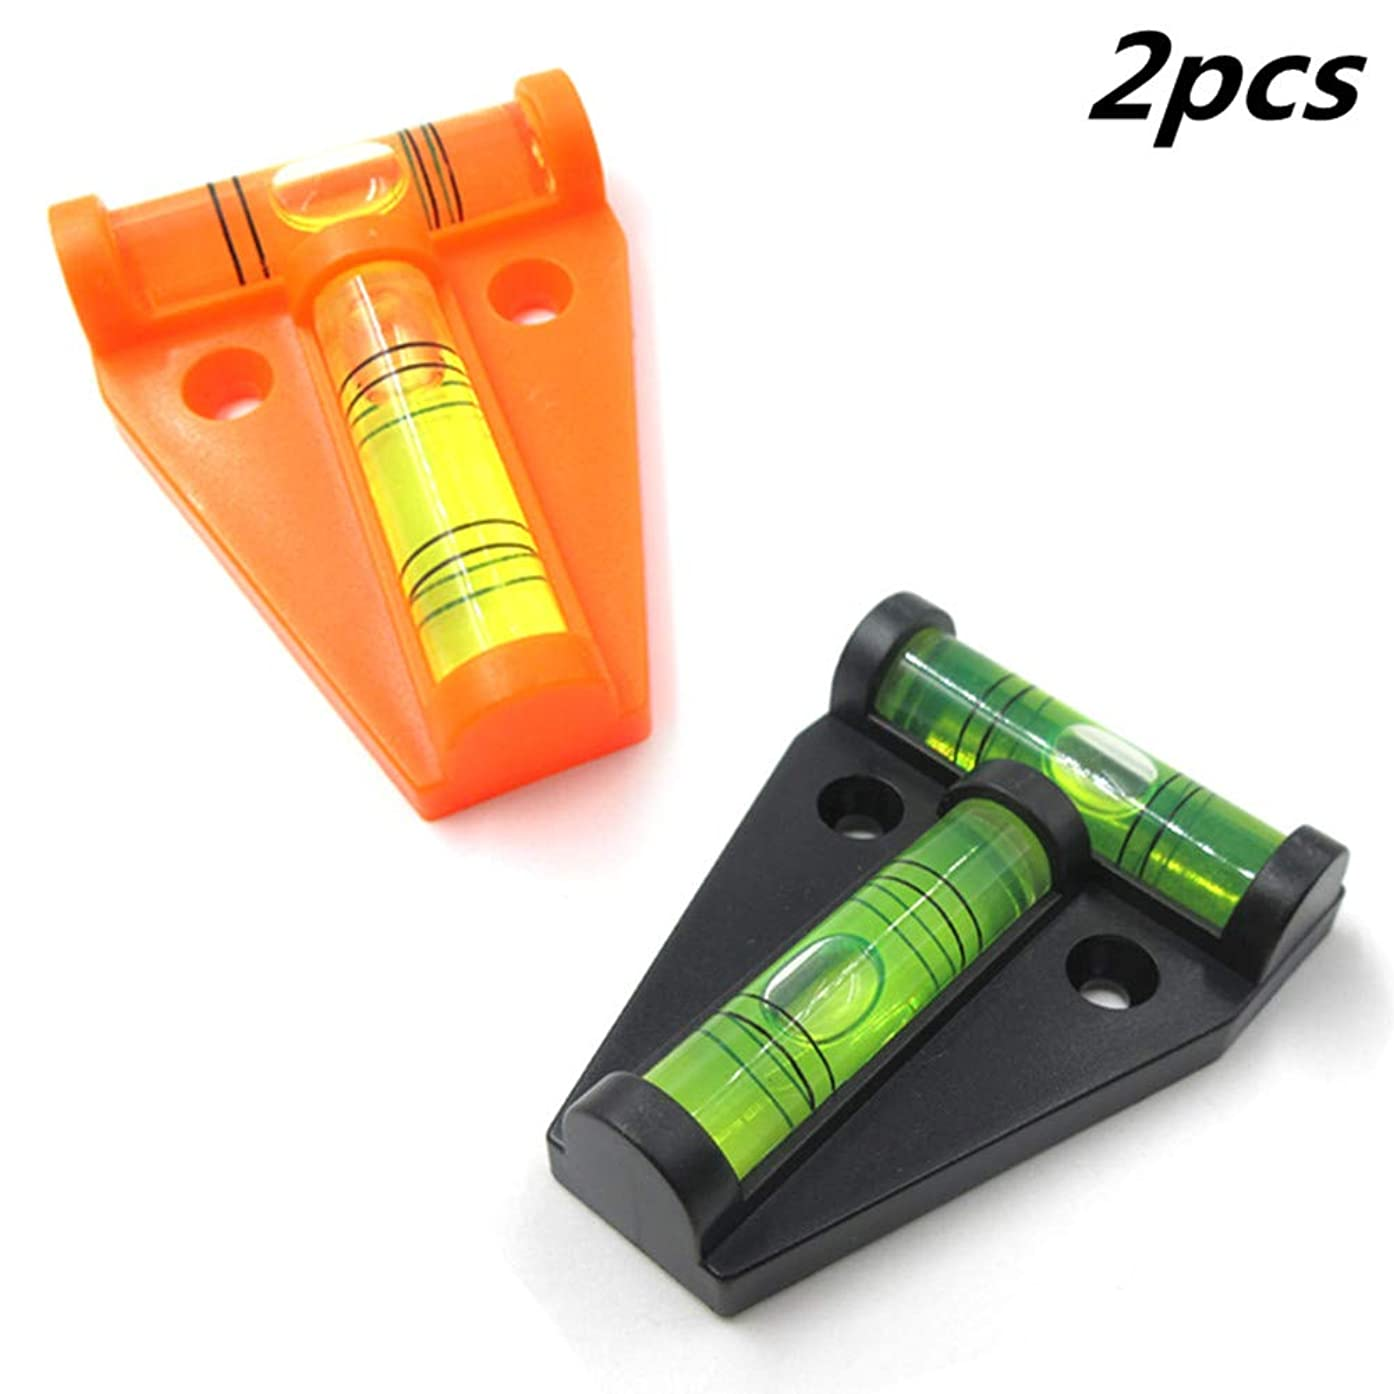 UBEI RV T-Level Shatterproof Cross Check Bubble Level 2 Way Multipurpose For RVs, Camping, Hobby, Milling, Machines, Furniture, Trailers, Construction, Home, Tripods, Camera Equipment, Etc (2 pcs)